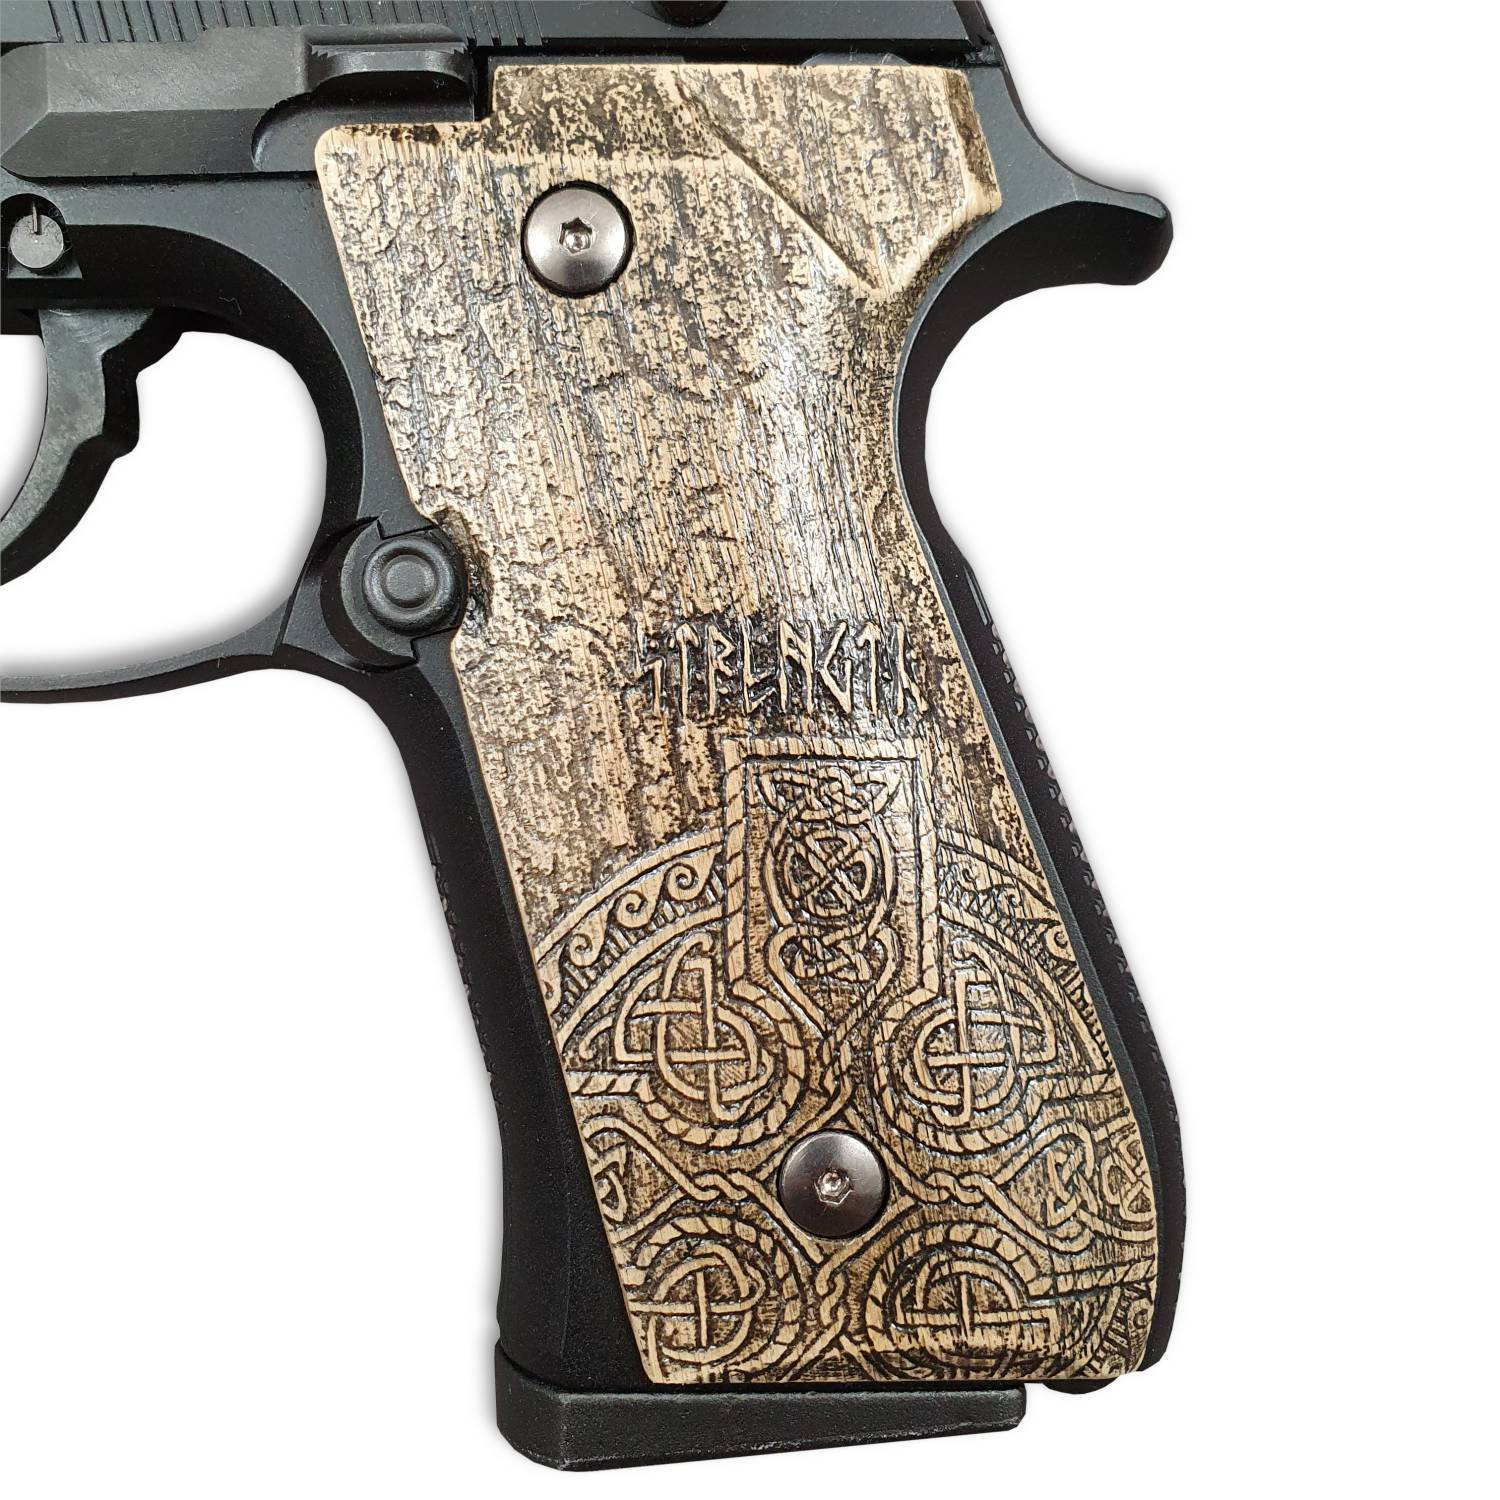 Strength And Honor - Beretta 92, 92A1, 92G, 92FS, 96, 96A1, 98FS, 98A1, M9, M9A1 Grips